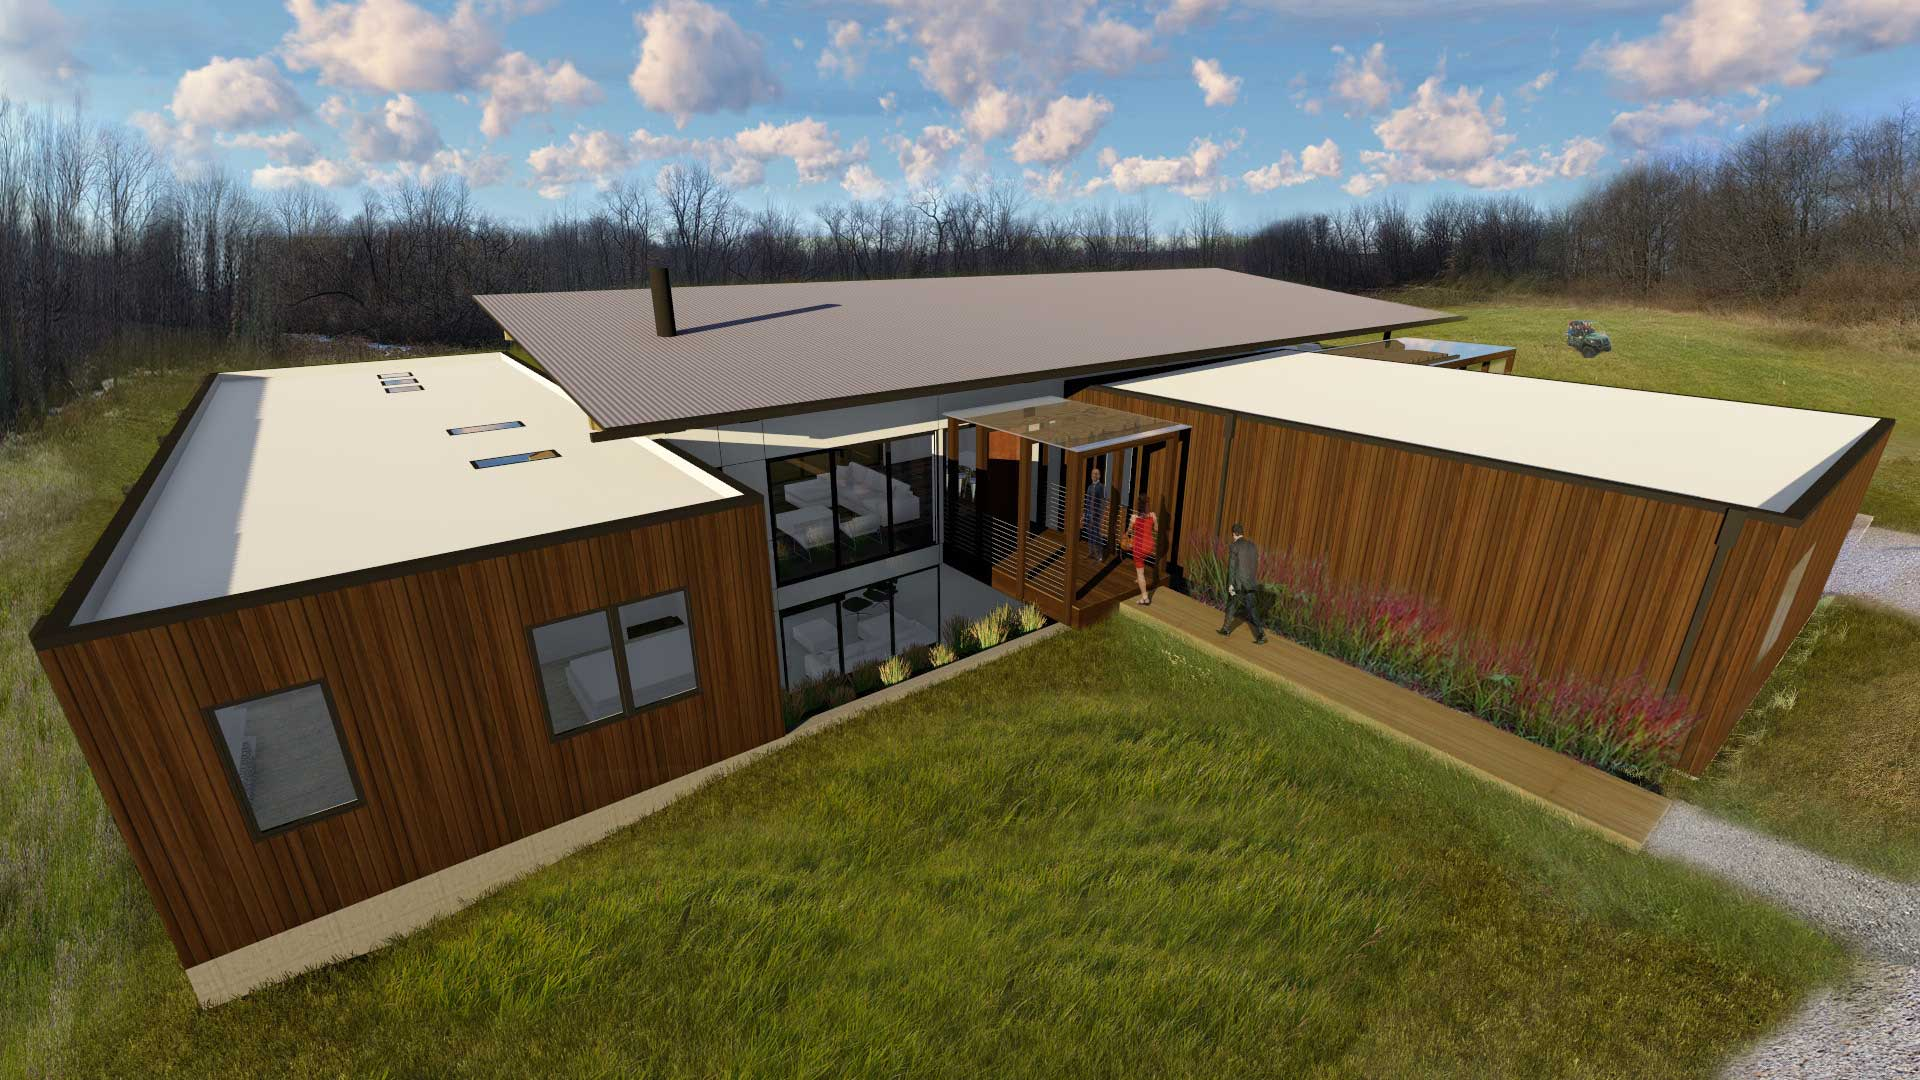 Rendering-North Exterior Bird's Eye View highlights the entry bridge and north bay window - New Modern House 1 (Copperwood) - Zionsville, IN